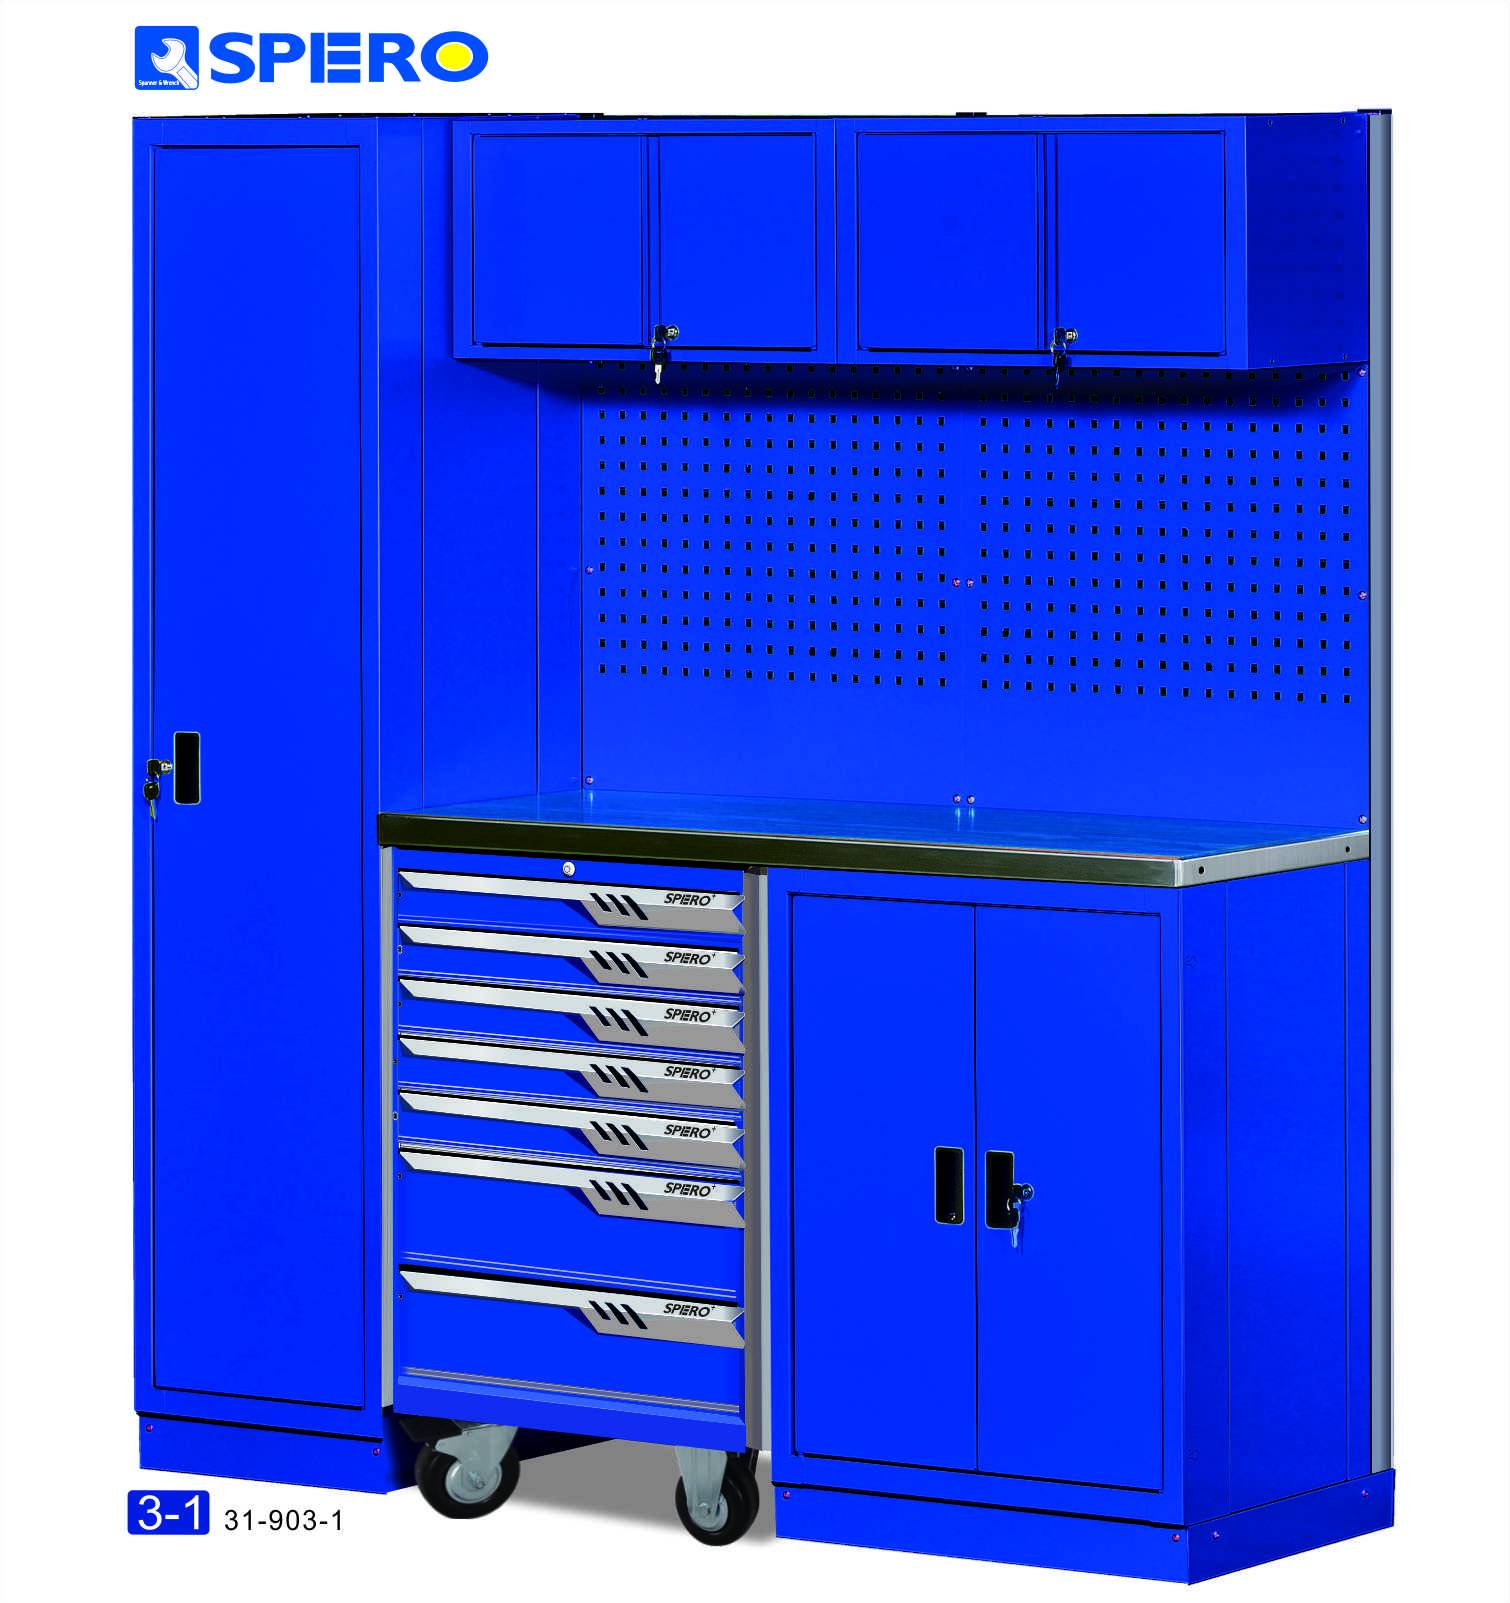 Cabinet OA Design - Cabinet OA Design Assembly Storage